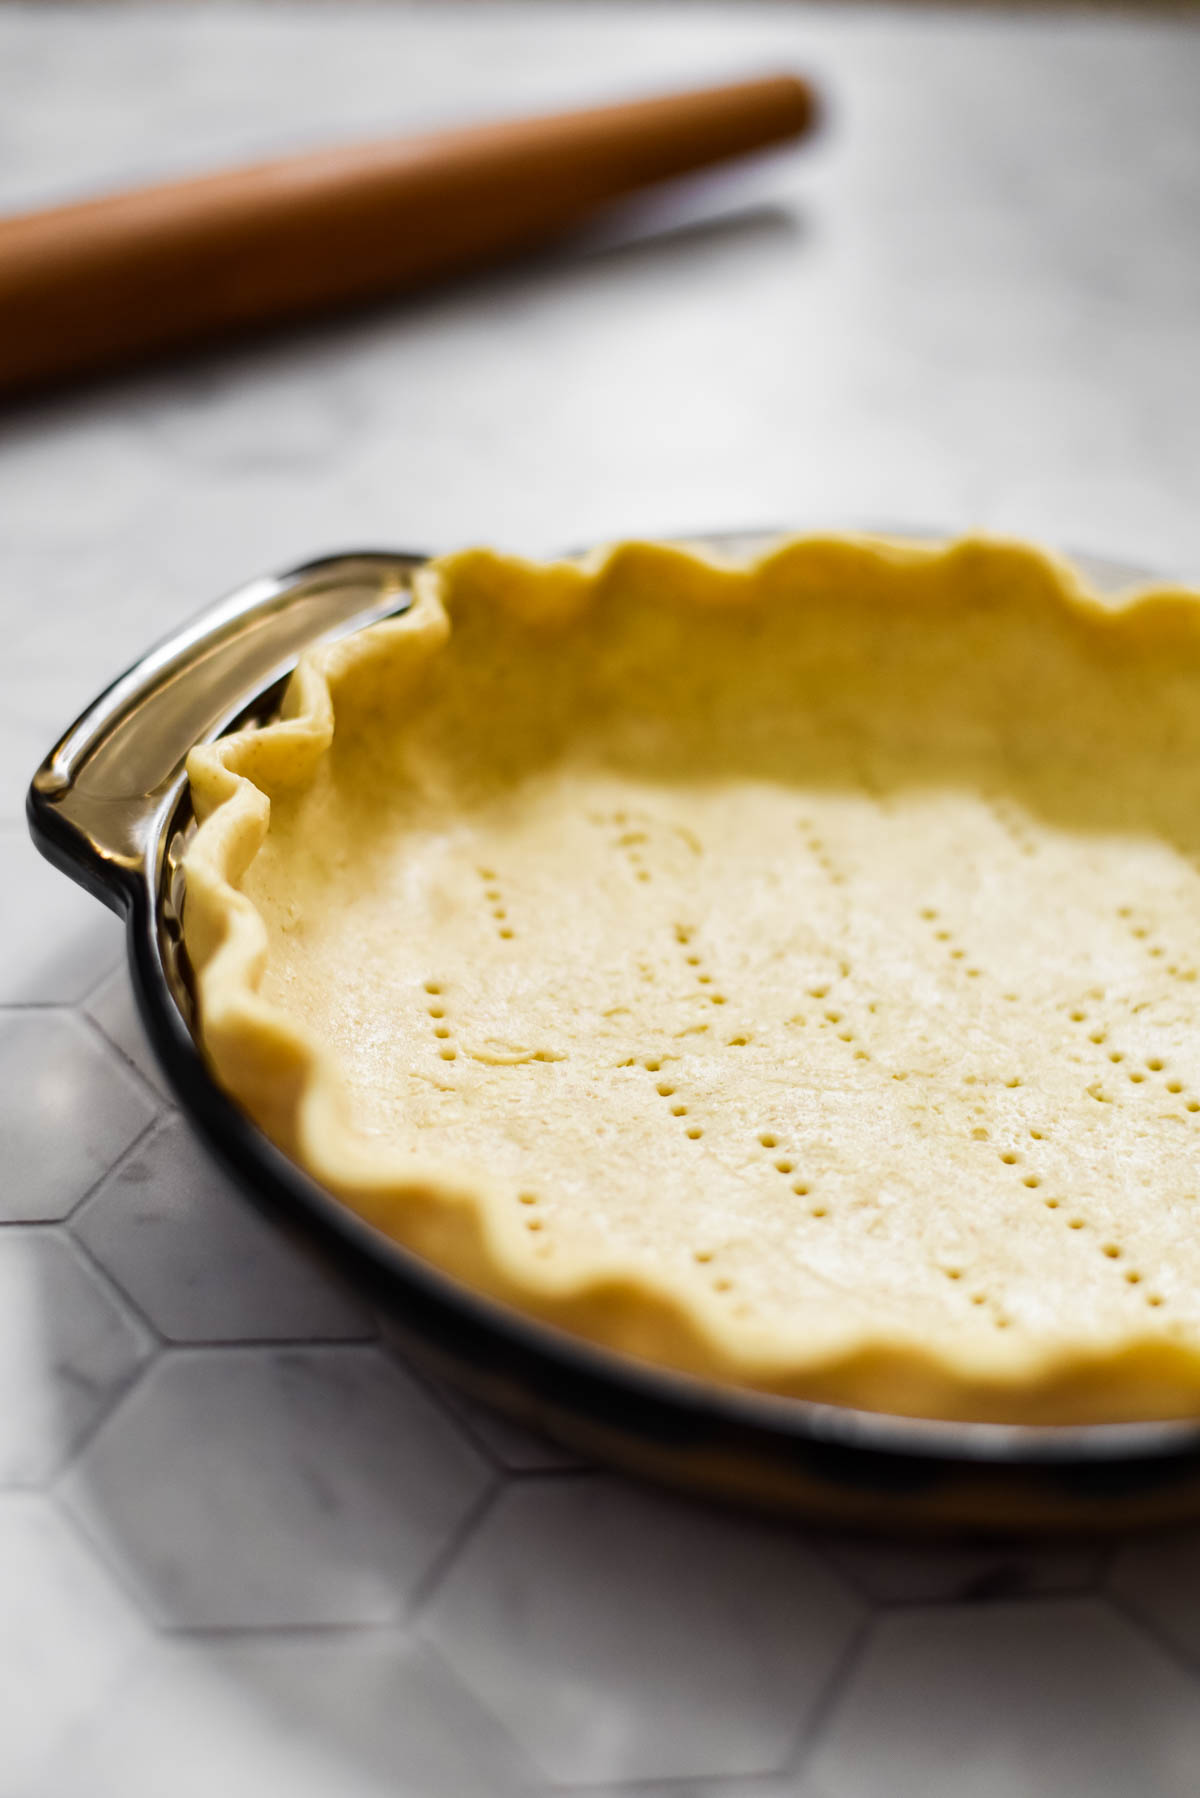 close up view of sourdough pie crust with crimped edges. Pie plate on tiled background with rolling pin in background.